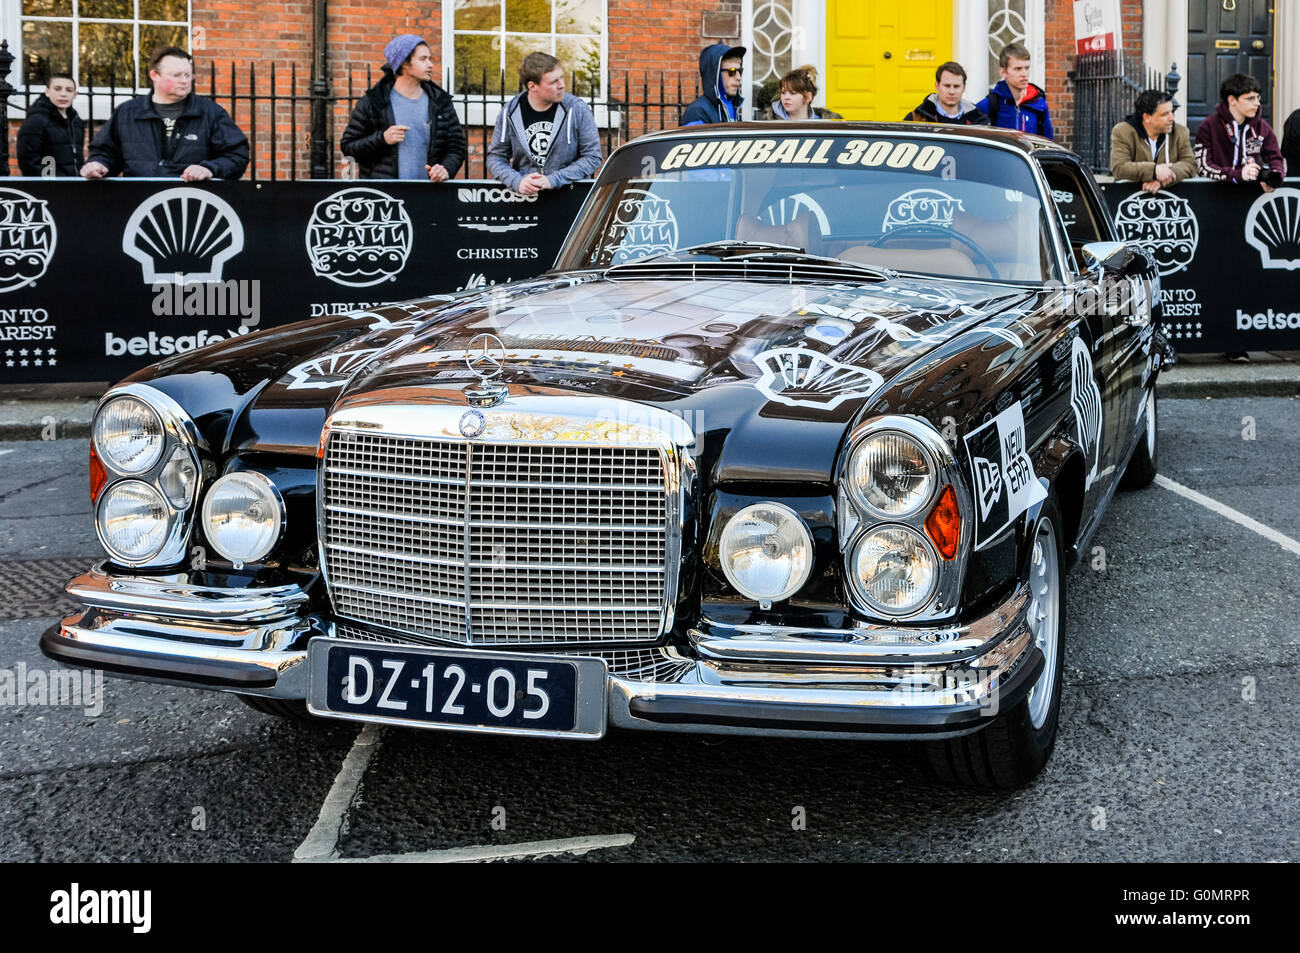 Old Mercedes Stock Photos Amp Old Mercedes Stock Images Alamy